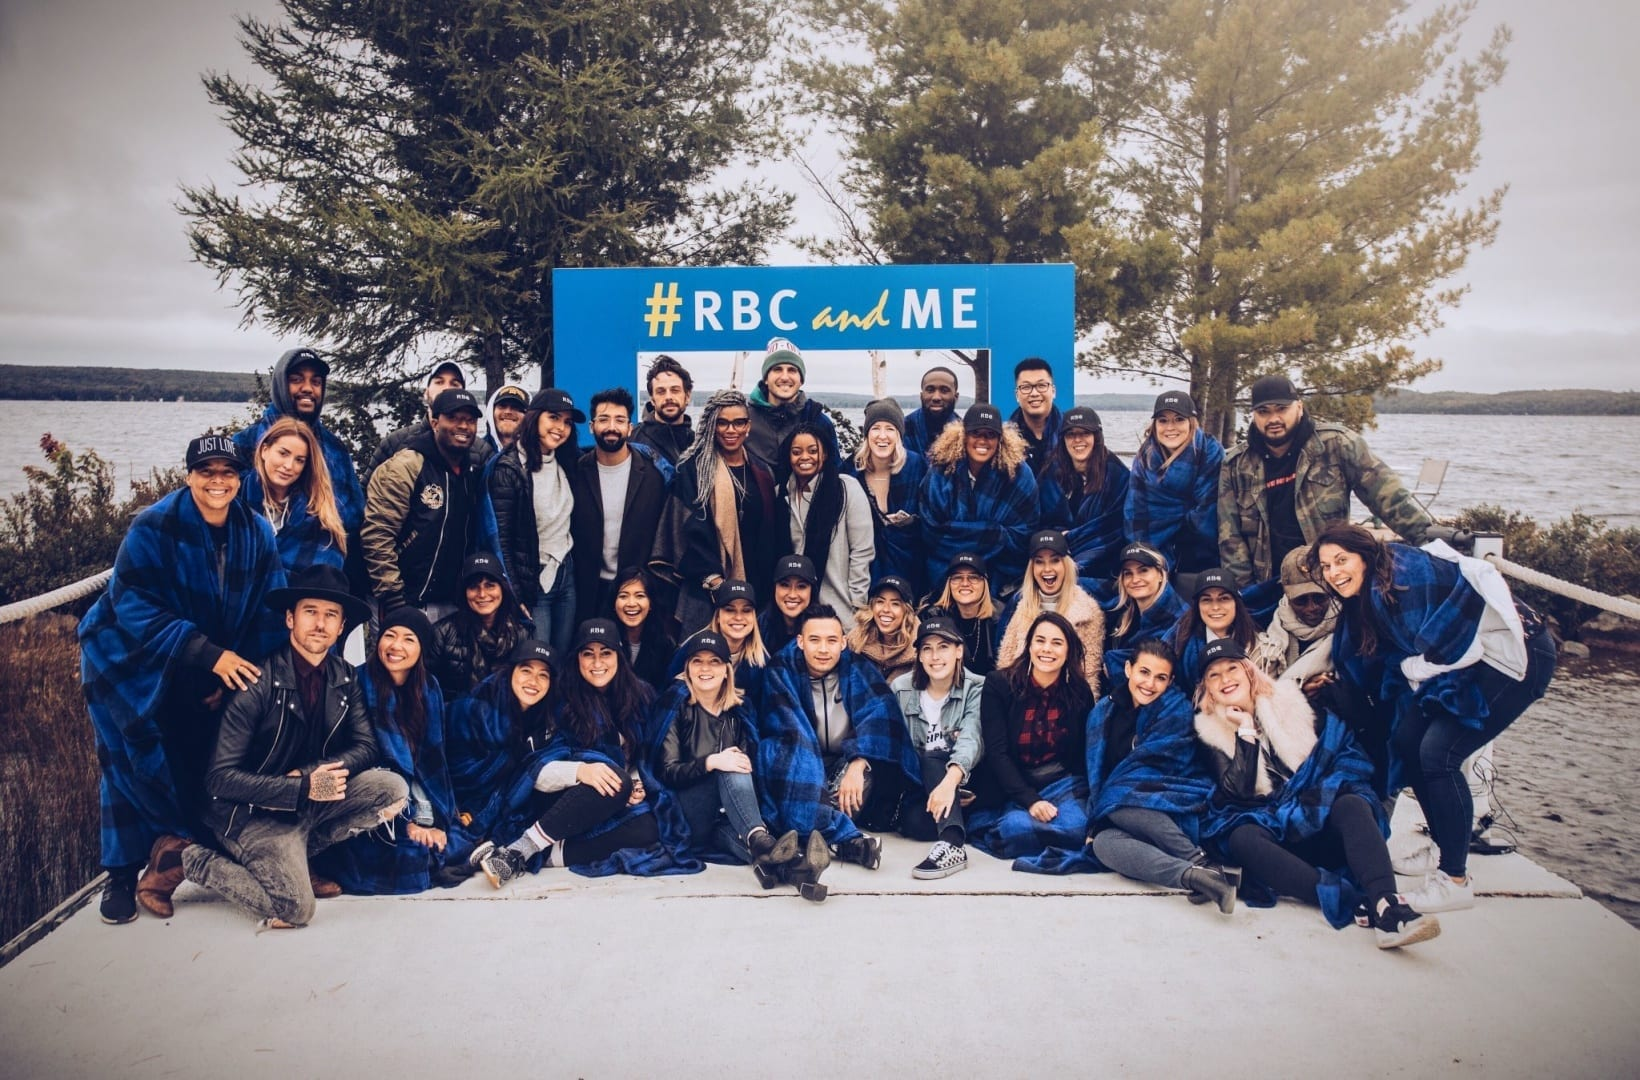 Notable Life x RBC #RBCandME group shot